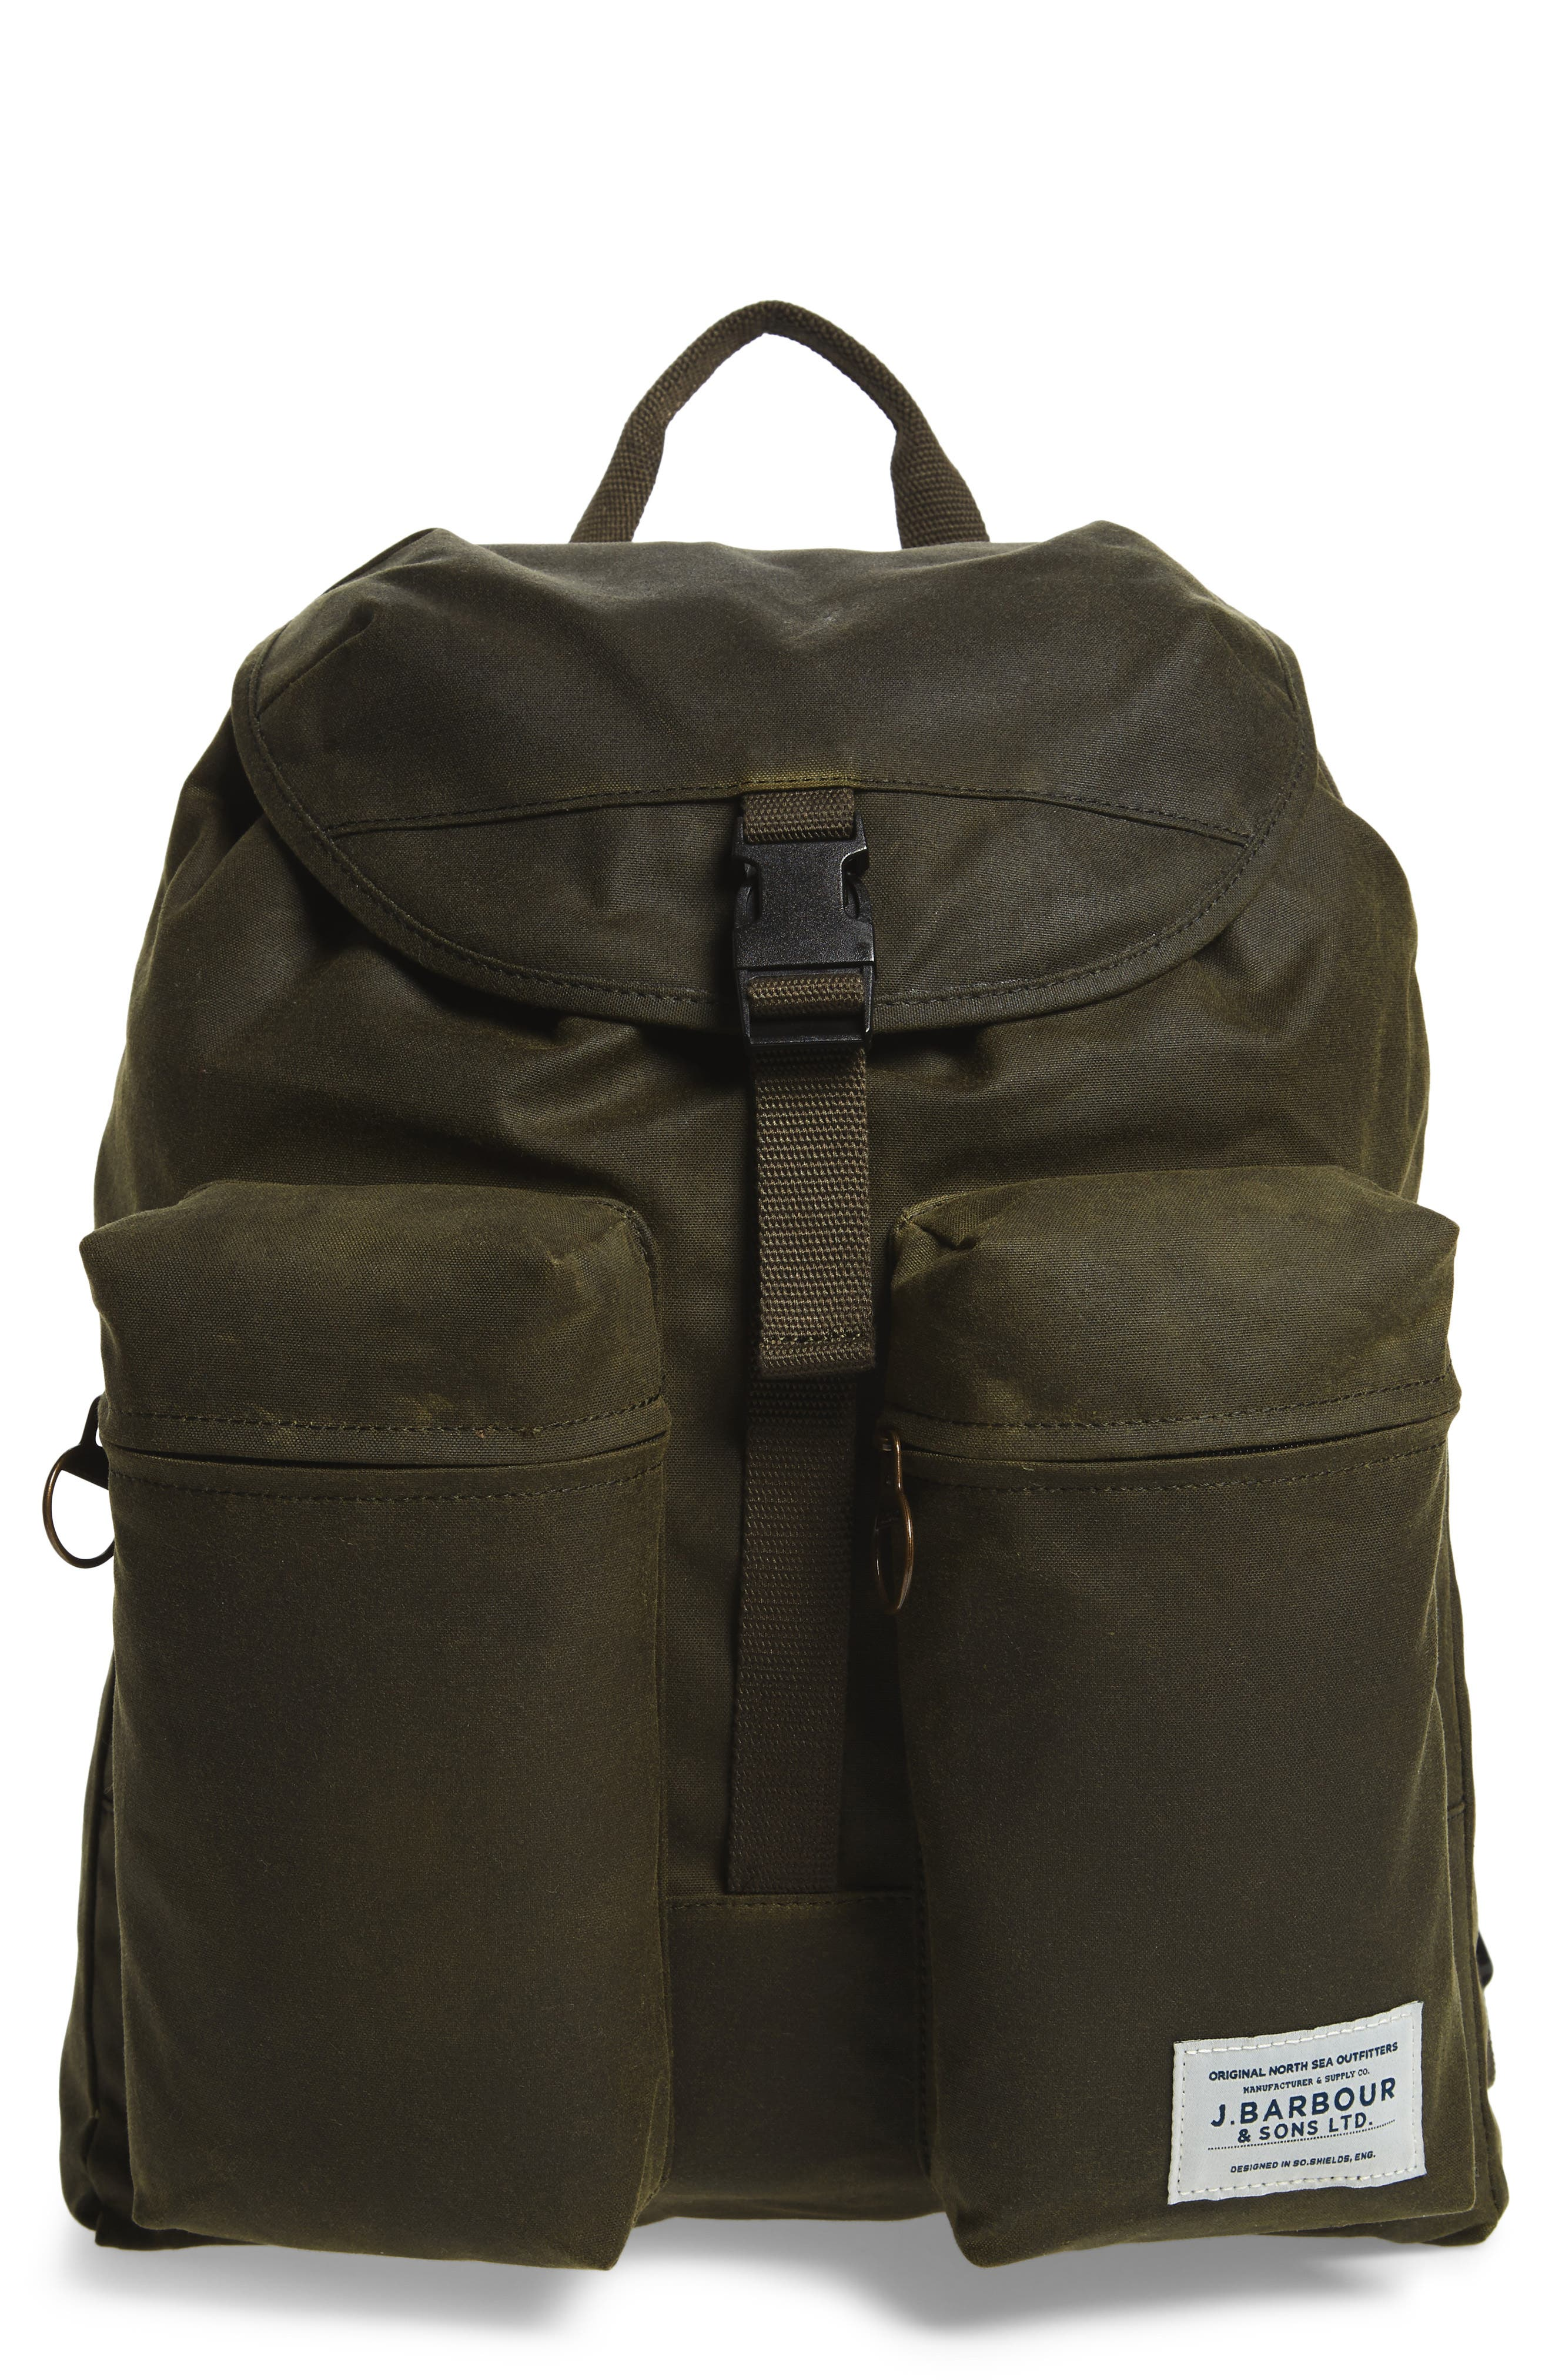 Archive Backpack,                         Main,                         color, ARCHIVE OLIVE